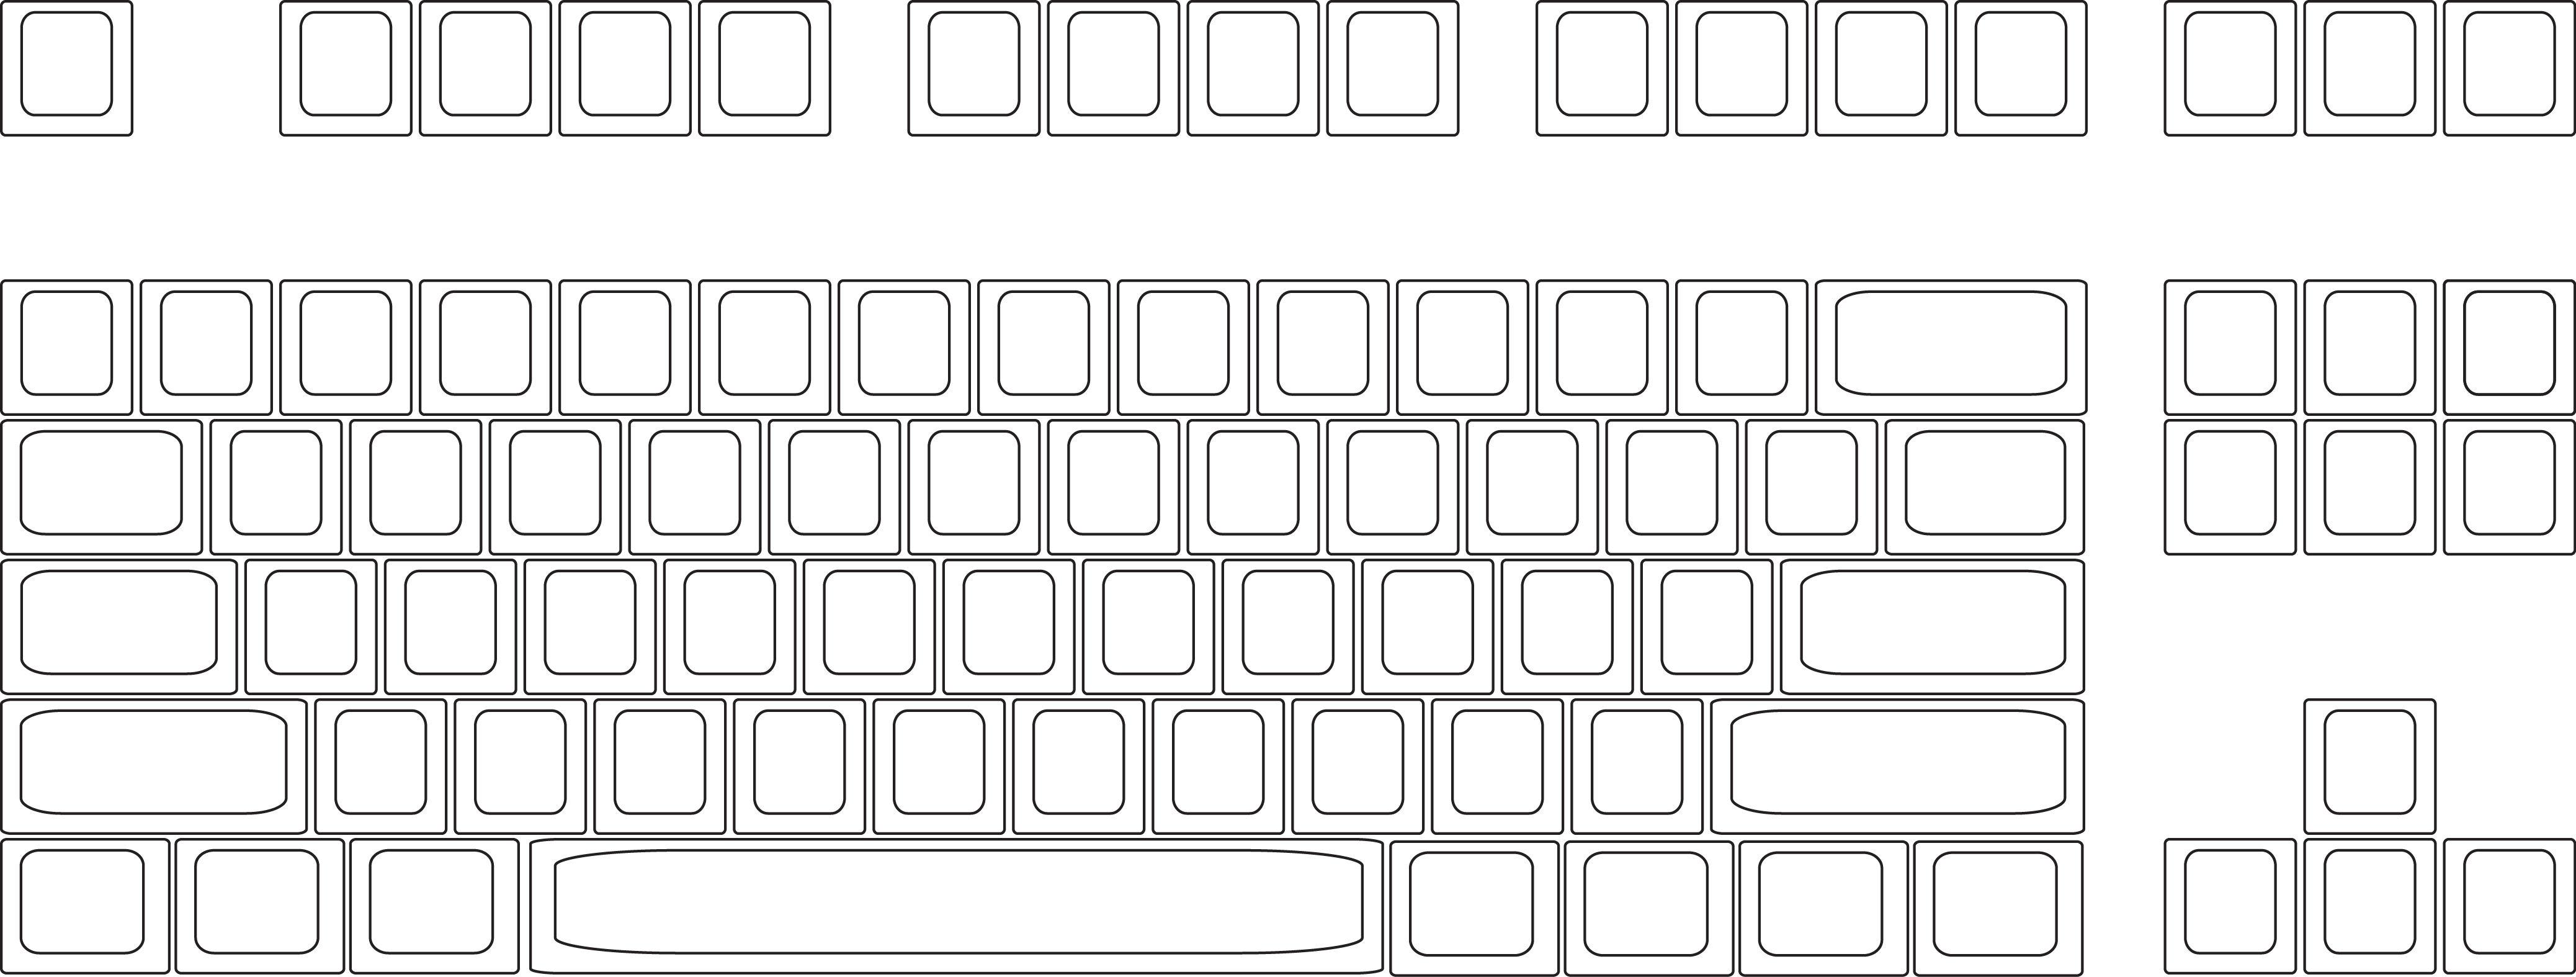 Fill In The Blank Keyboard Worksheet